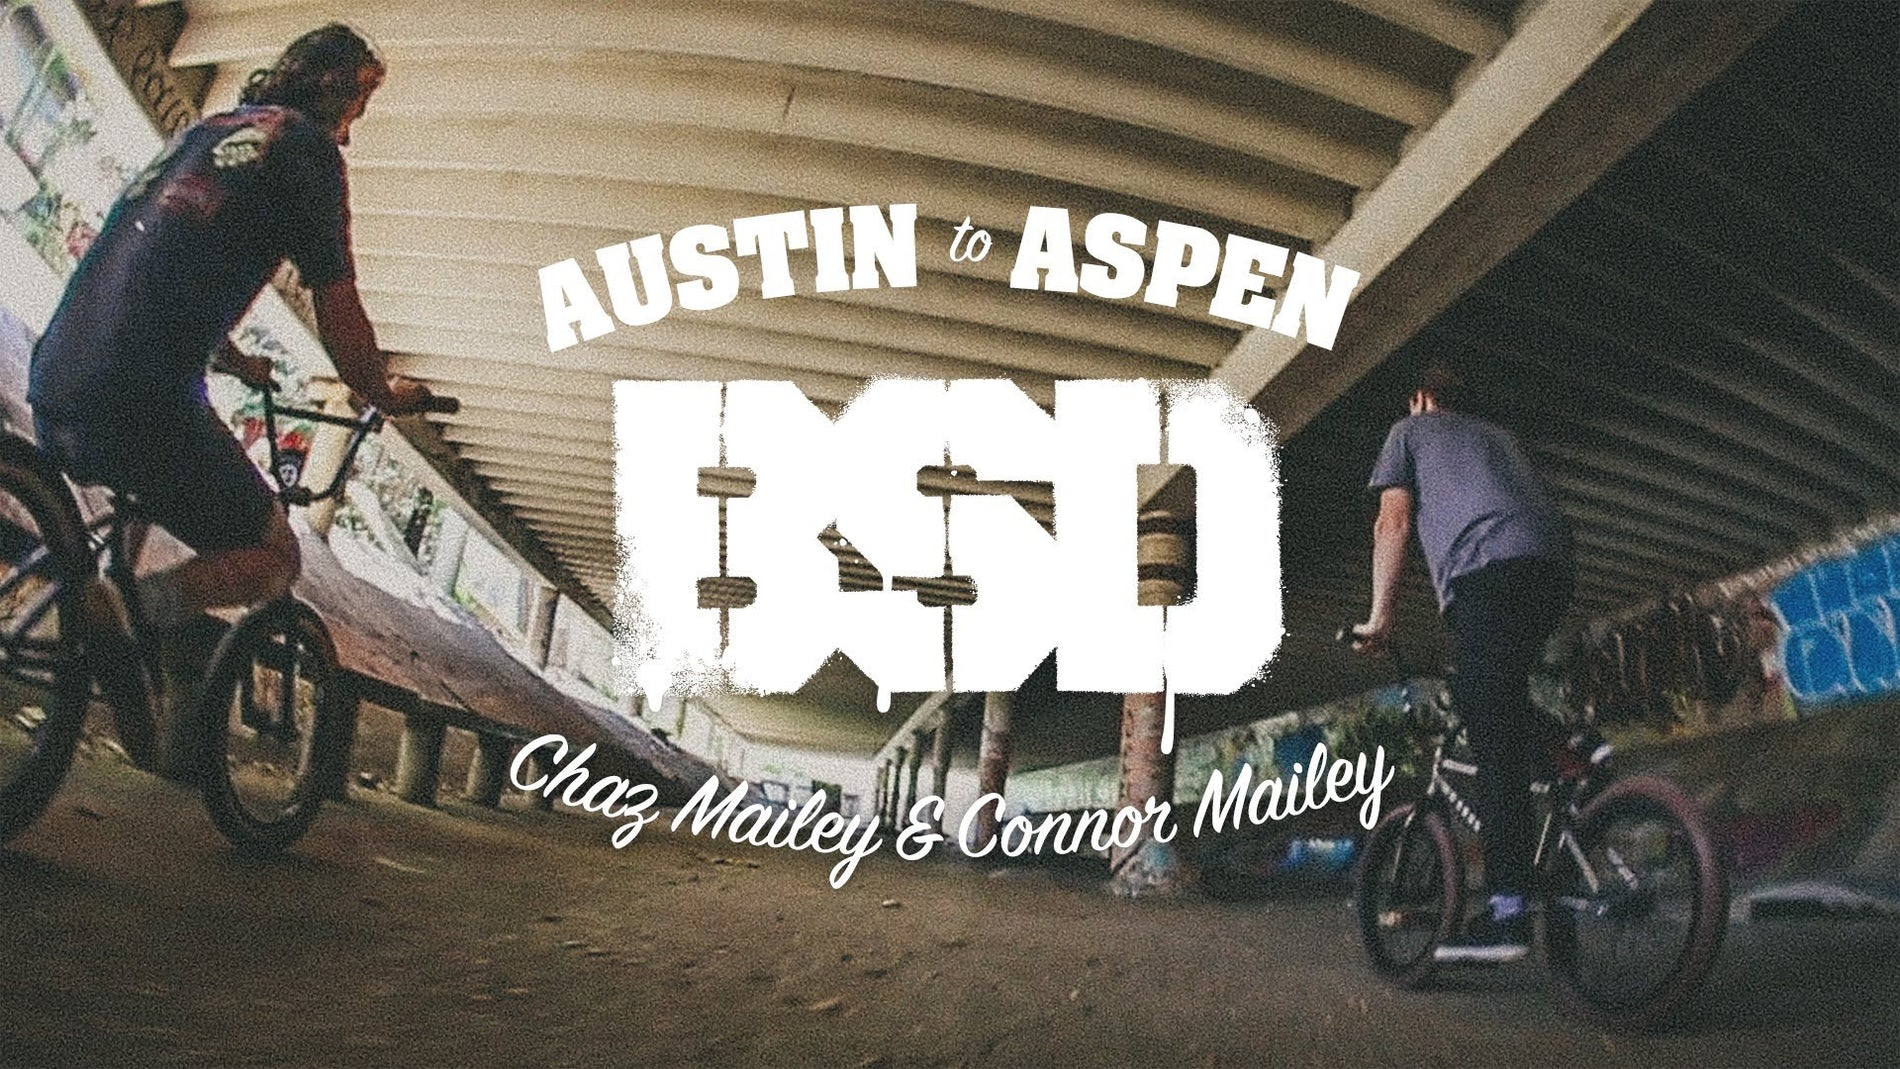 Chaz Mailey & Connor Mailey - Austin to Aspen